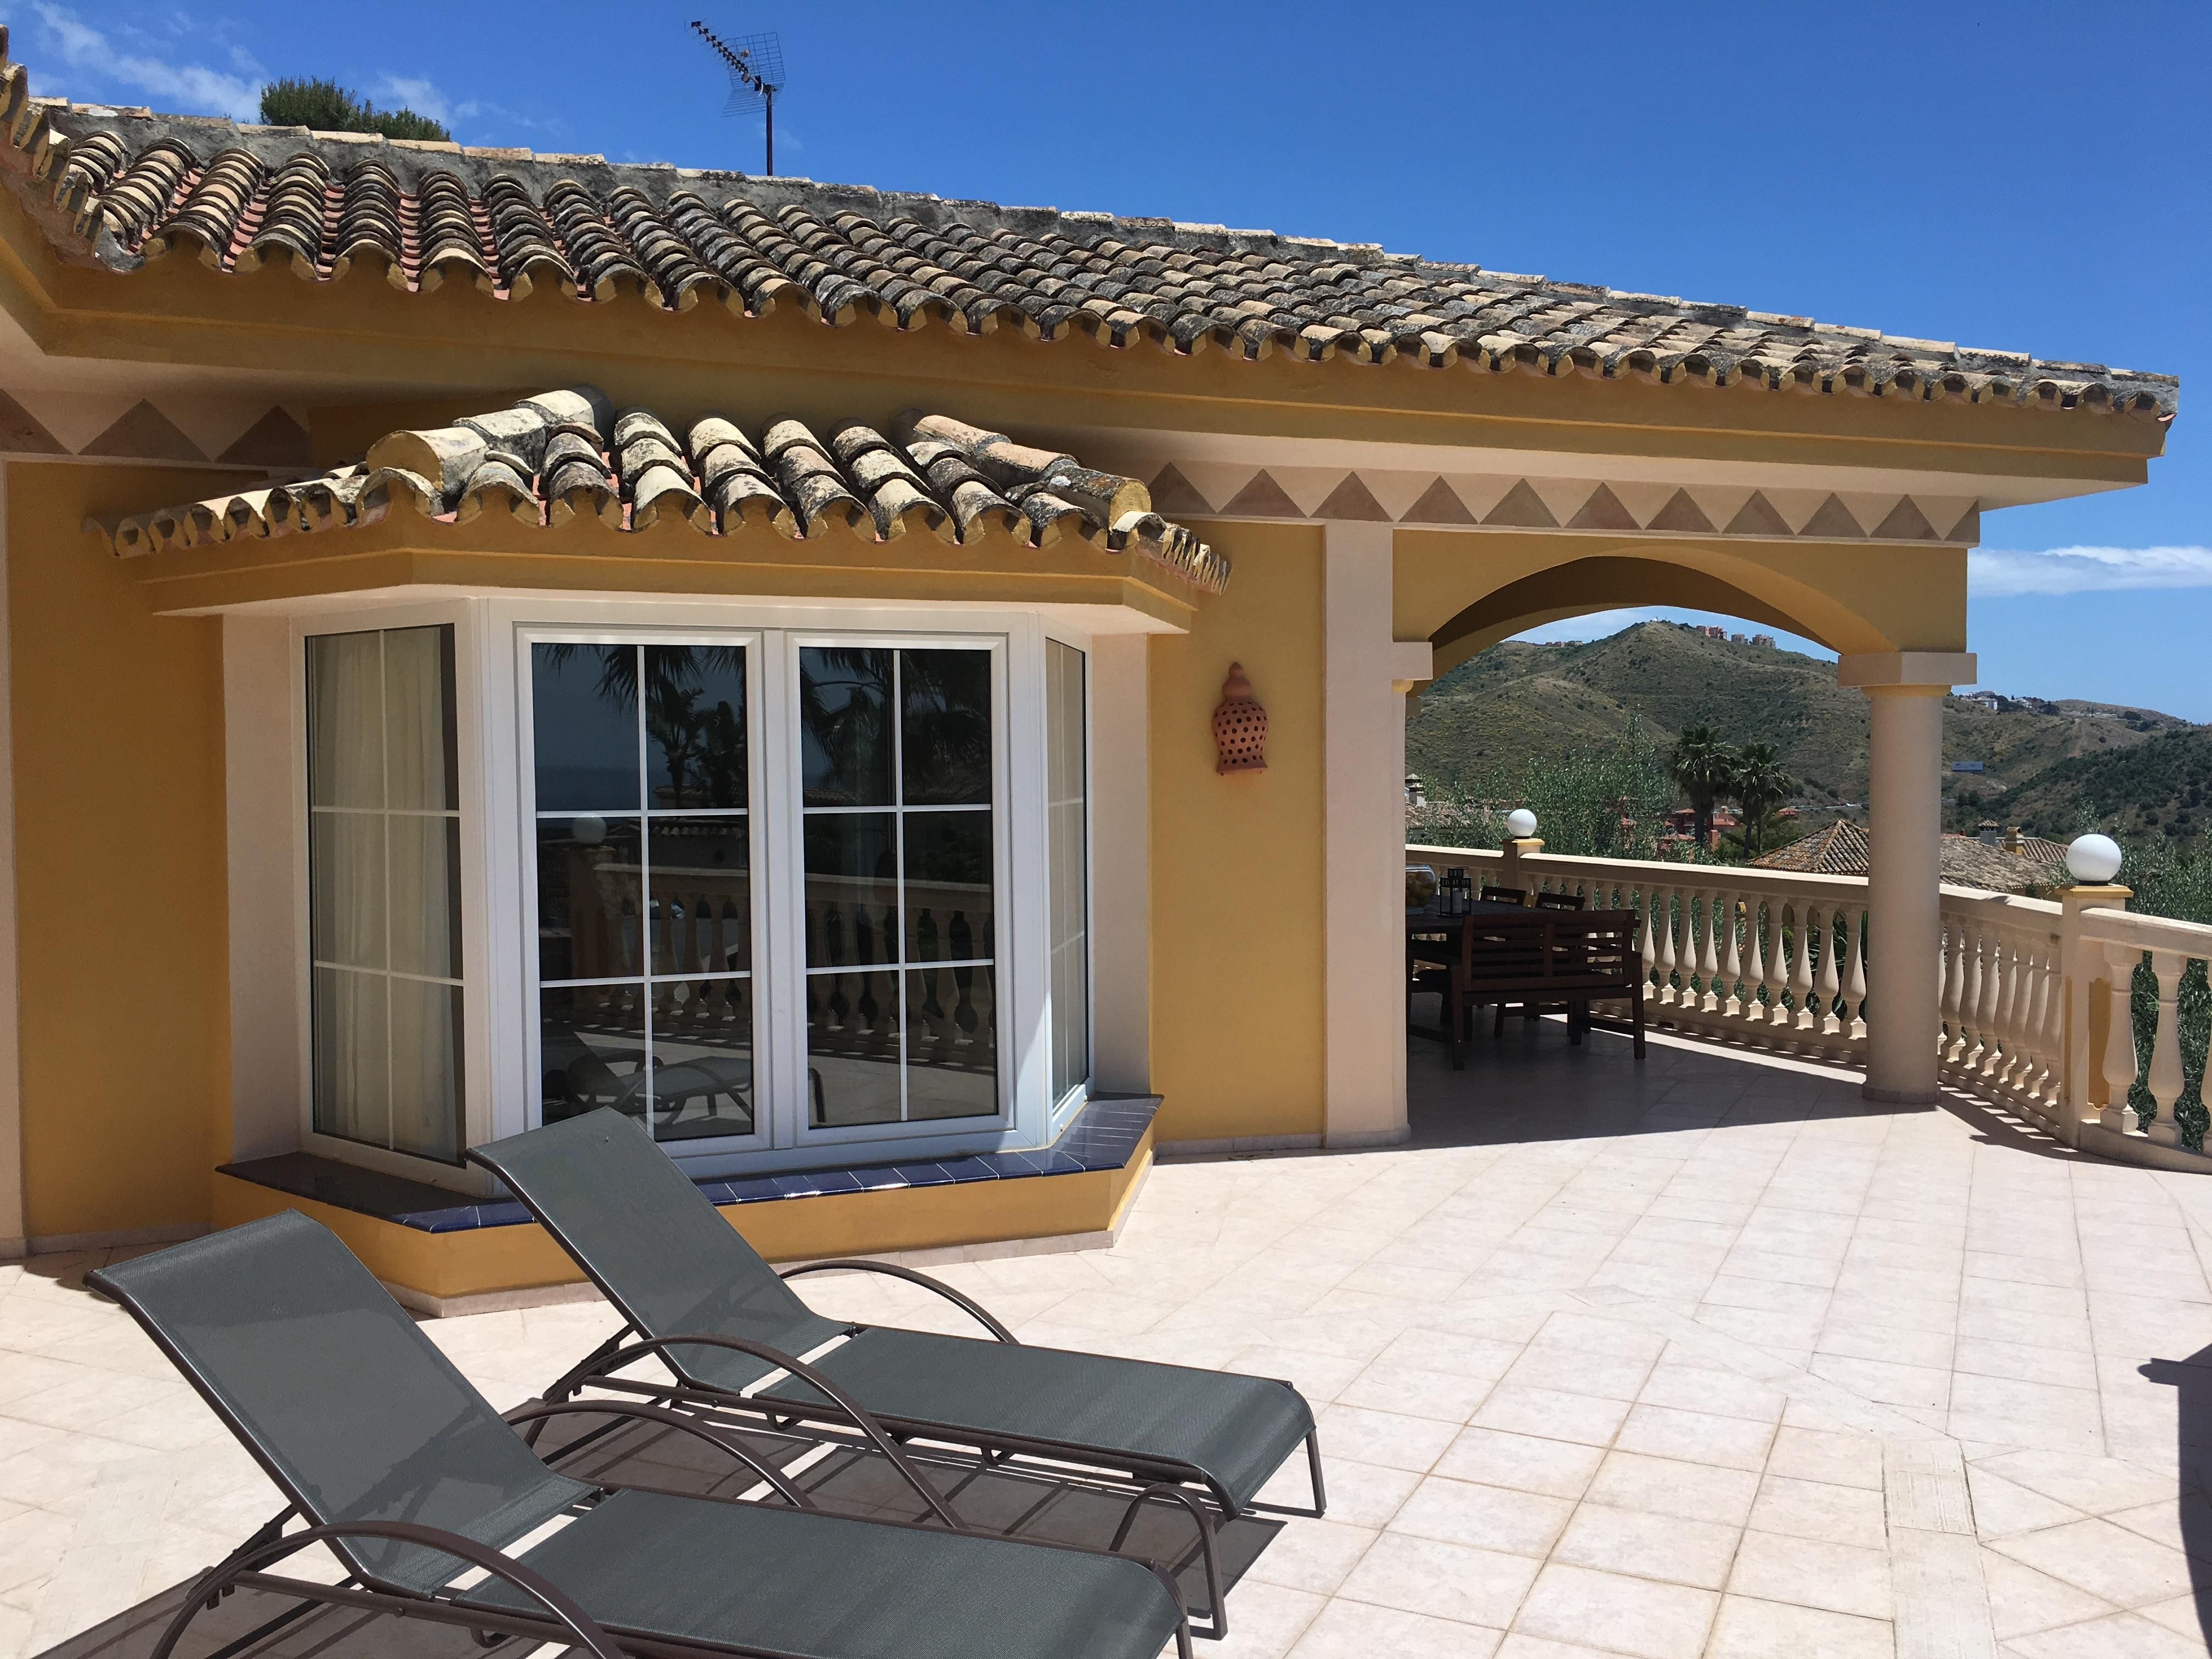 Villa Moorea, Villa available for Holiday Rental in Hacienda Las Chapas, Marbella, Spain